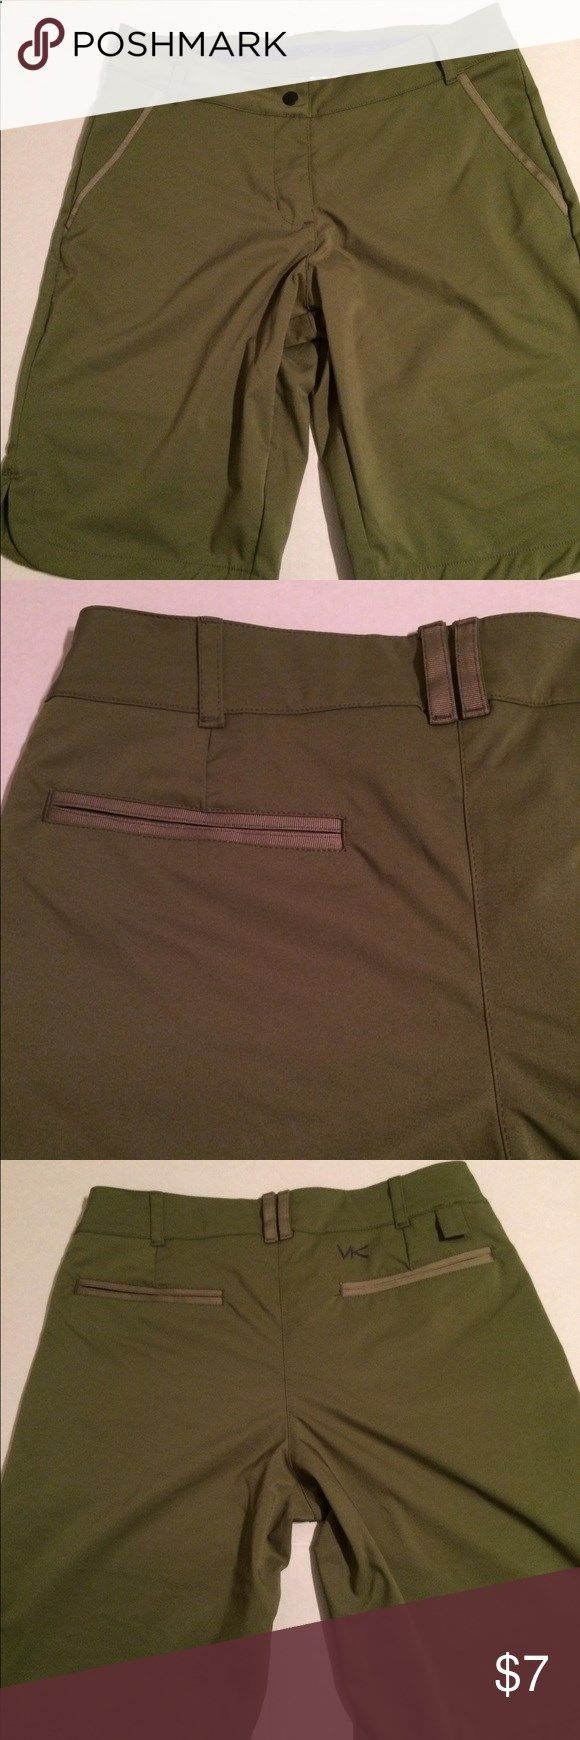 VK Sport Womens Golf Shorts Size 6 VK Sport Womens Golf Shorts Size 6. Theres no size tag or material tag. Measurements are waist 29 inches and length 19 inches. In great used condition with minimal wear. No snags, rips, stains or any damage noted. Comes from smoke-free and pet-free home. Thanks for looking 😊 VK Sport Shorts